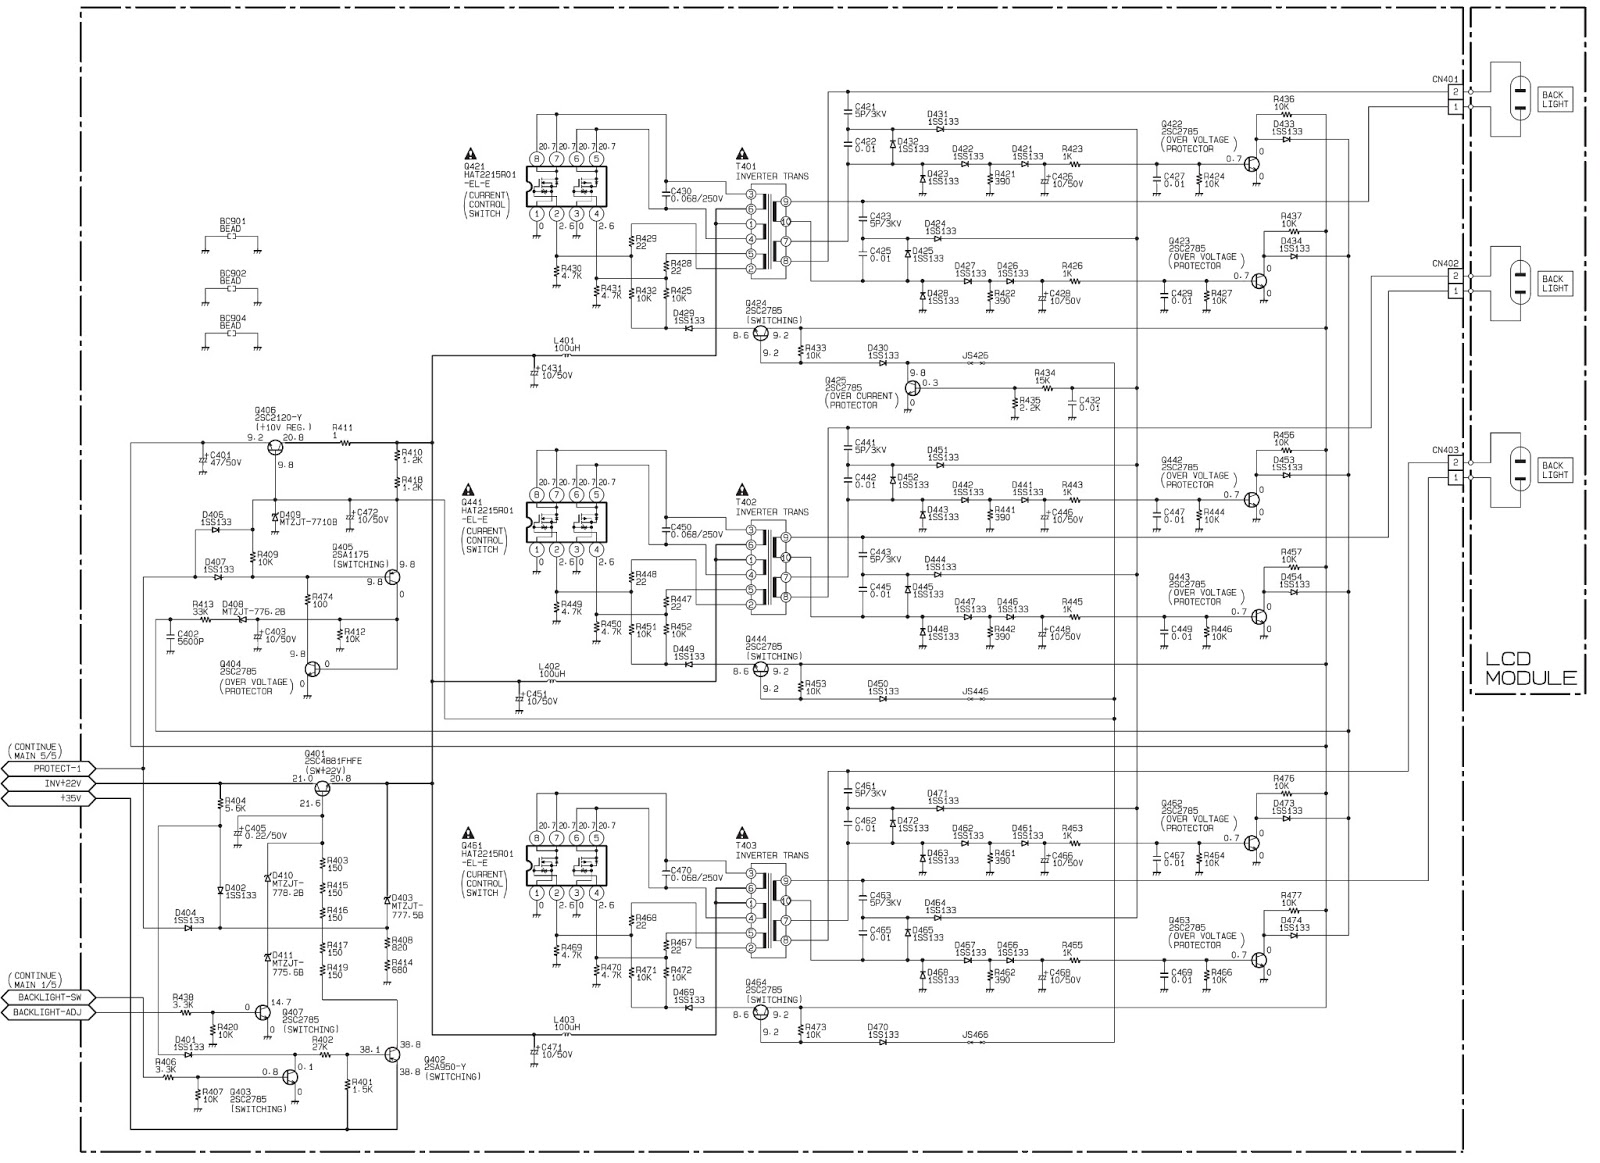 Emerson Ups Circuit Diagram Free Wiring For You Images Gallery